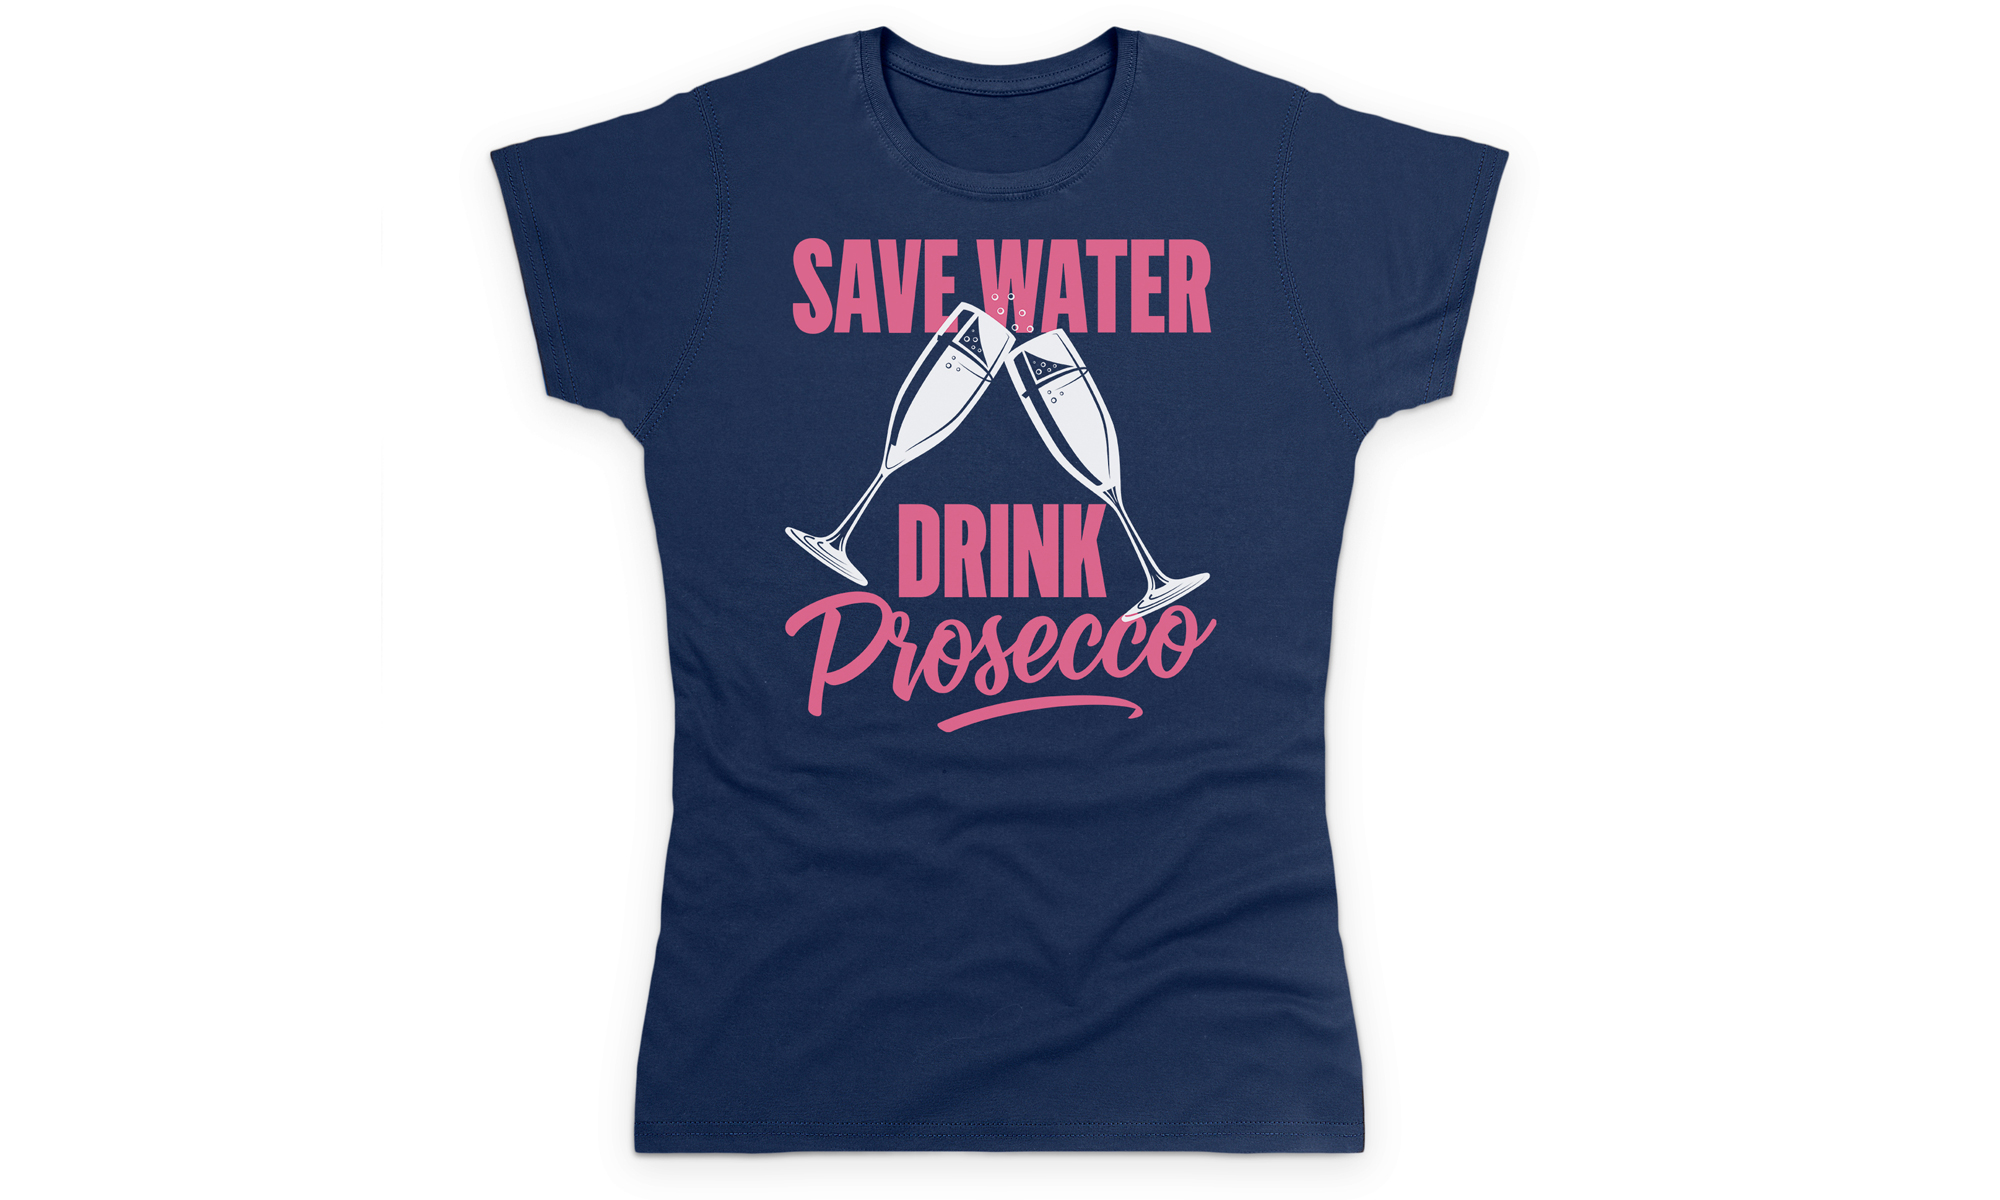 Women's Novelty Prosecco T-Shirts From £9.98